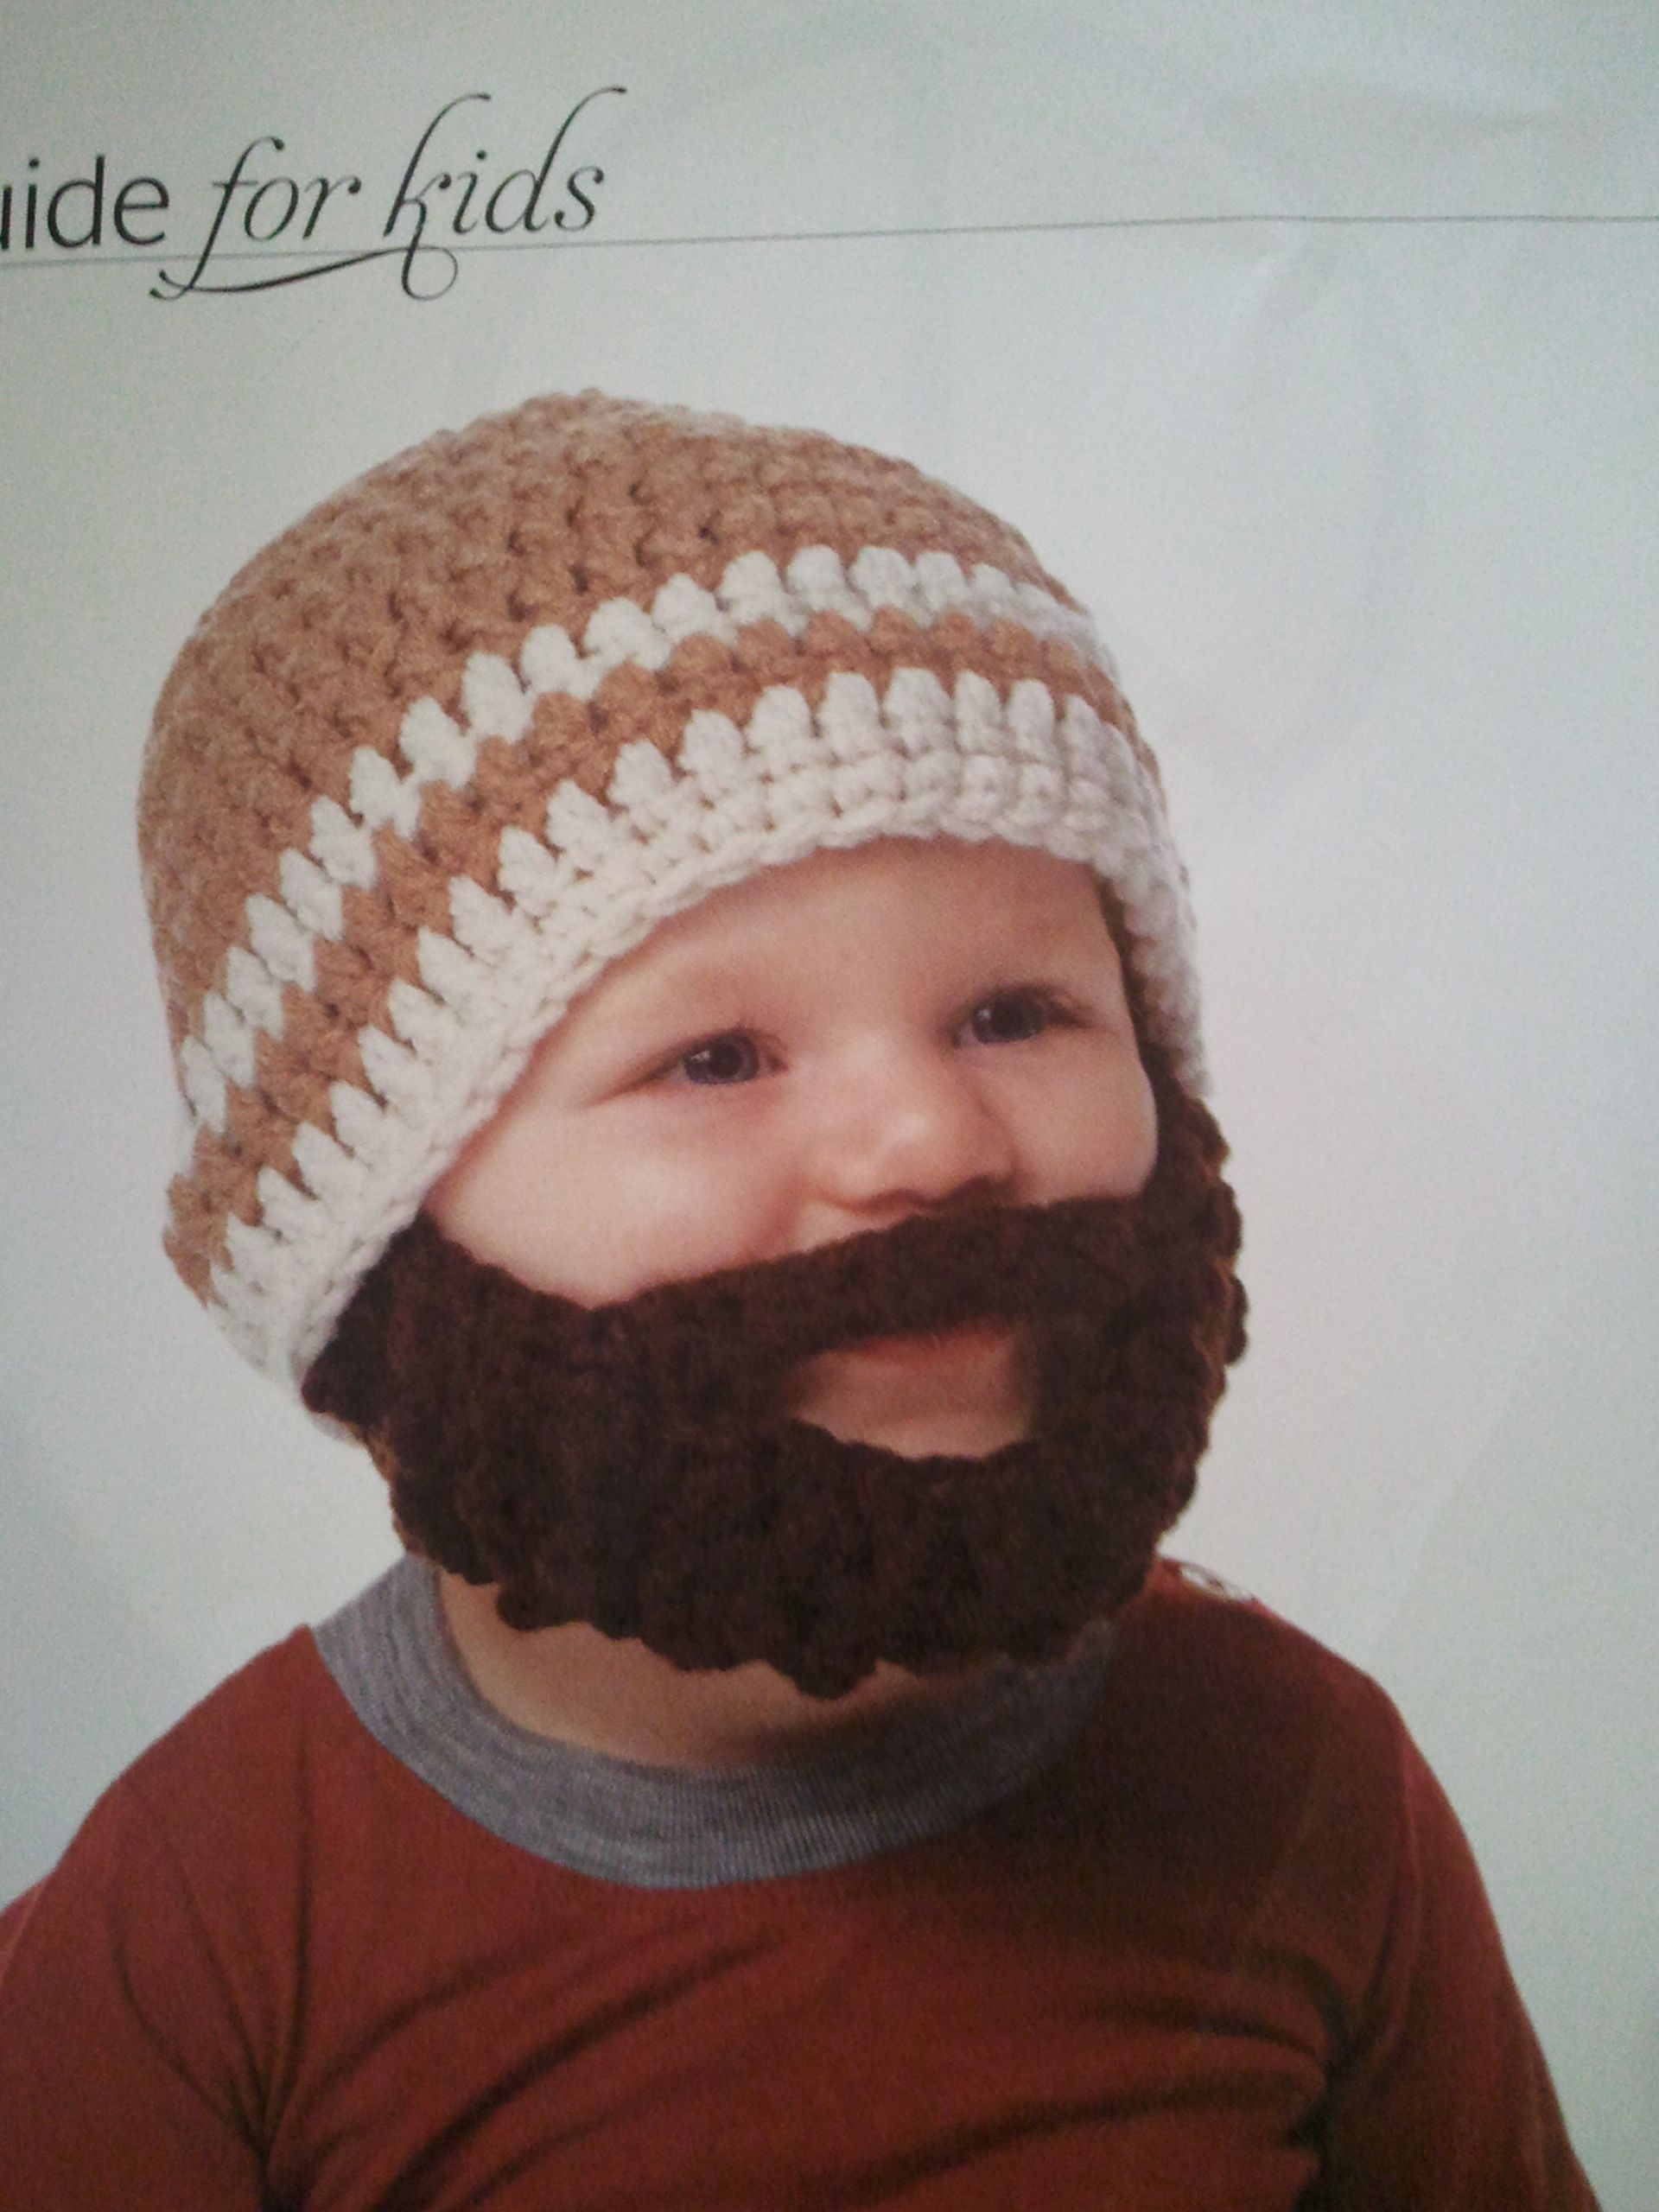 Baby Beard - ski mask for kids | Let It Snow | Pinterest | Babies